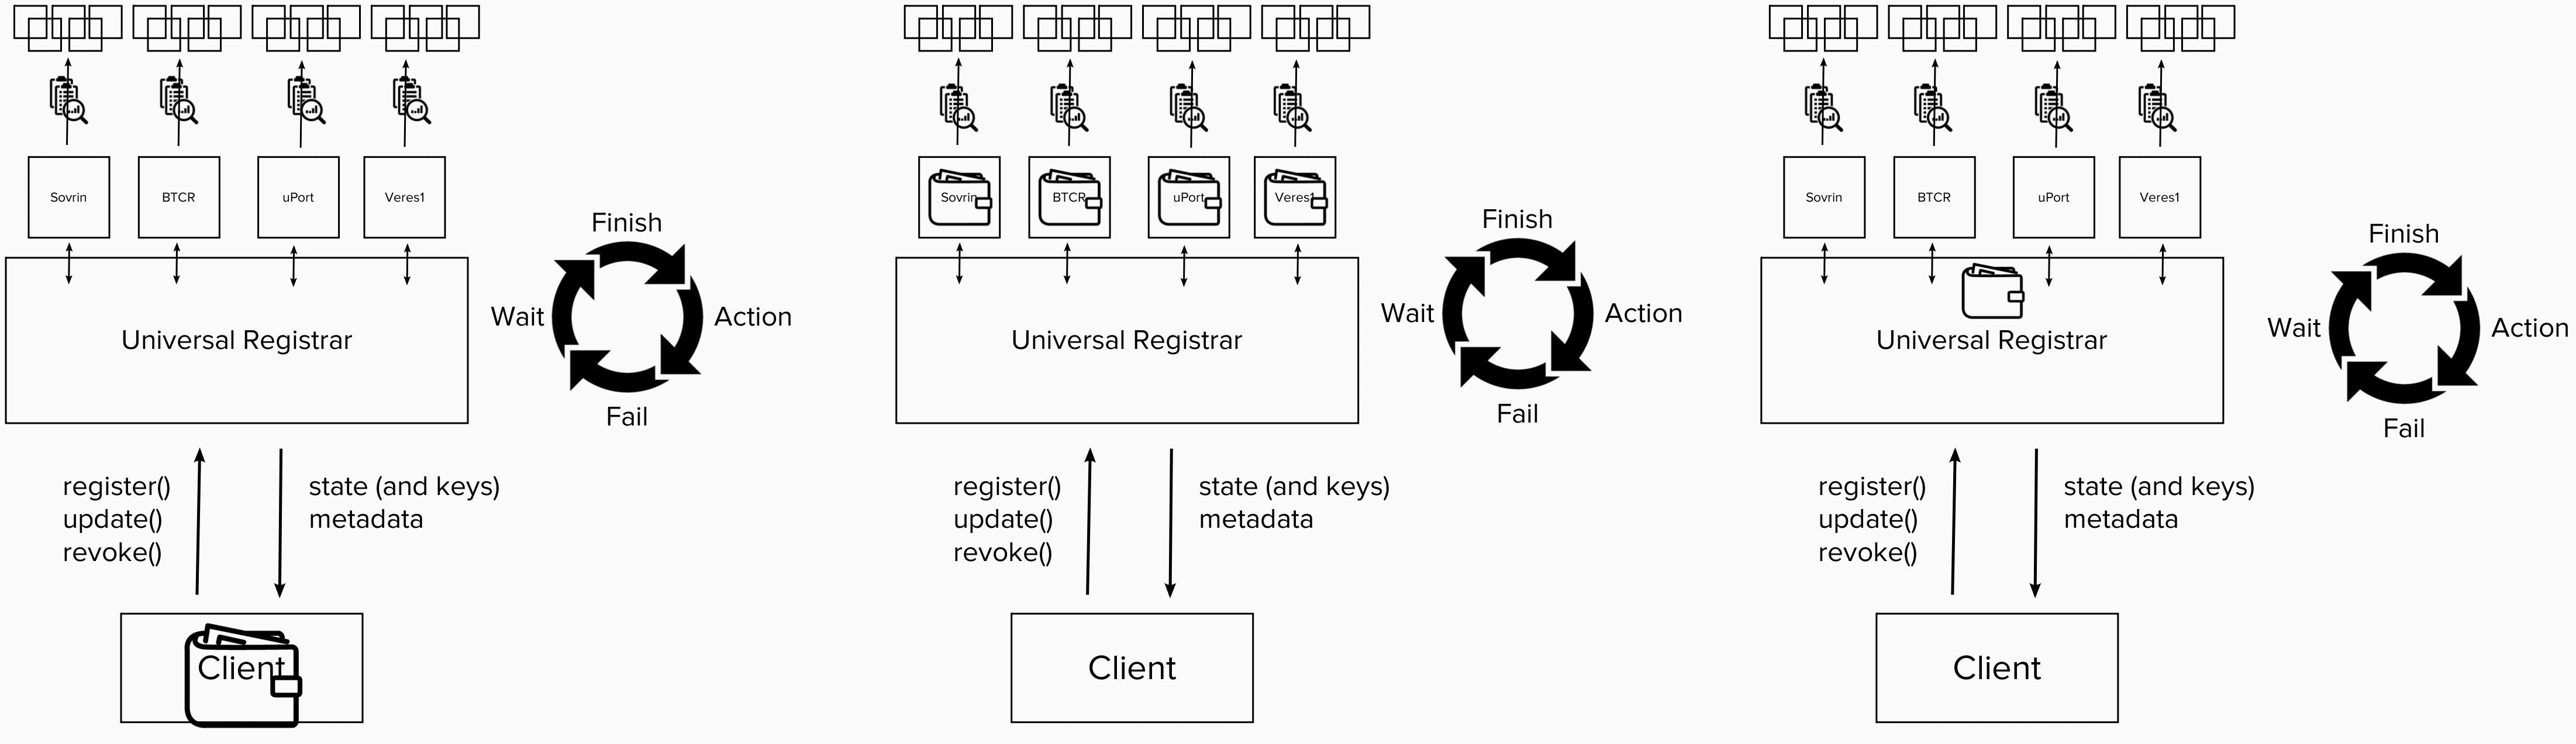 The Universal Registrar interface can be configured to generate & store keys in various locations, e.g. in the client, in each method-specific driver, or in the Registrar's cloud wallet.